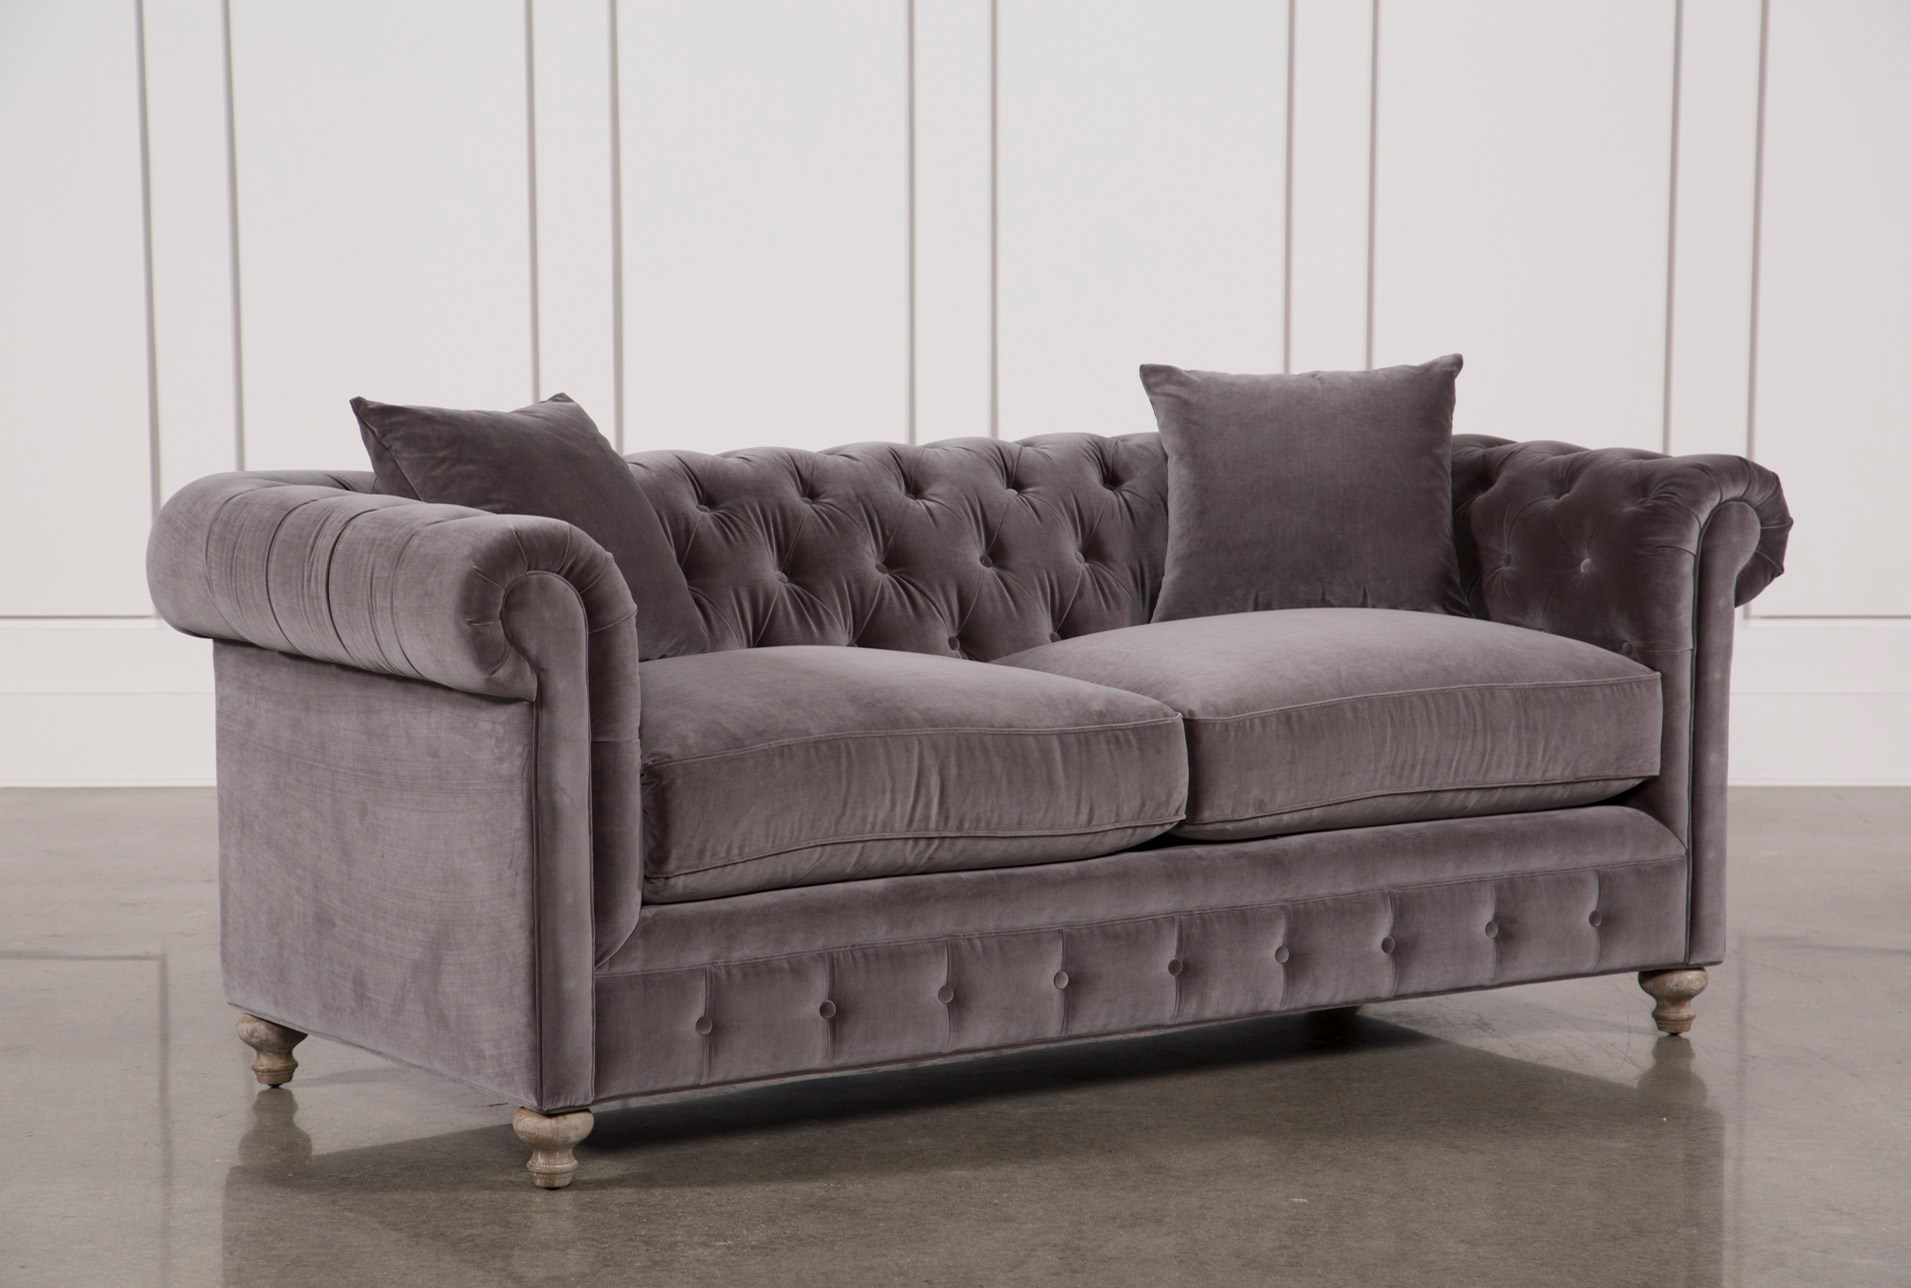 Mansfield 86 inch graphite velvet sofa qty 1 has been successfully added to your cart